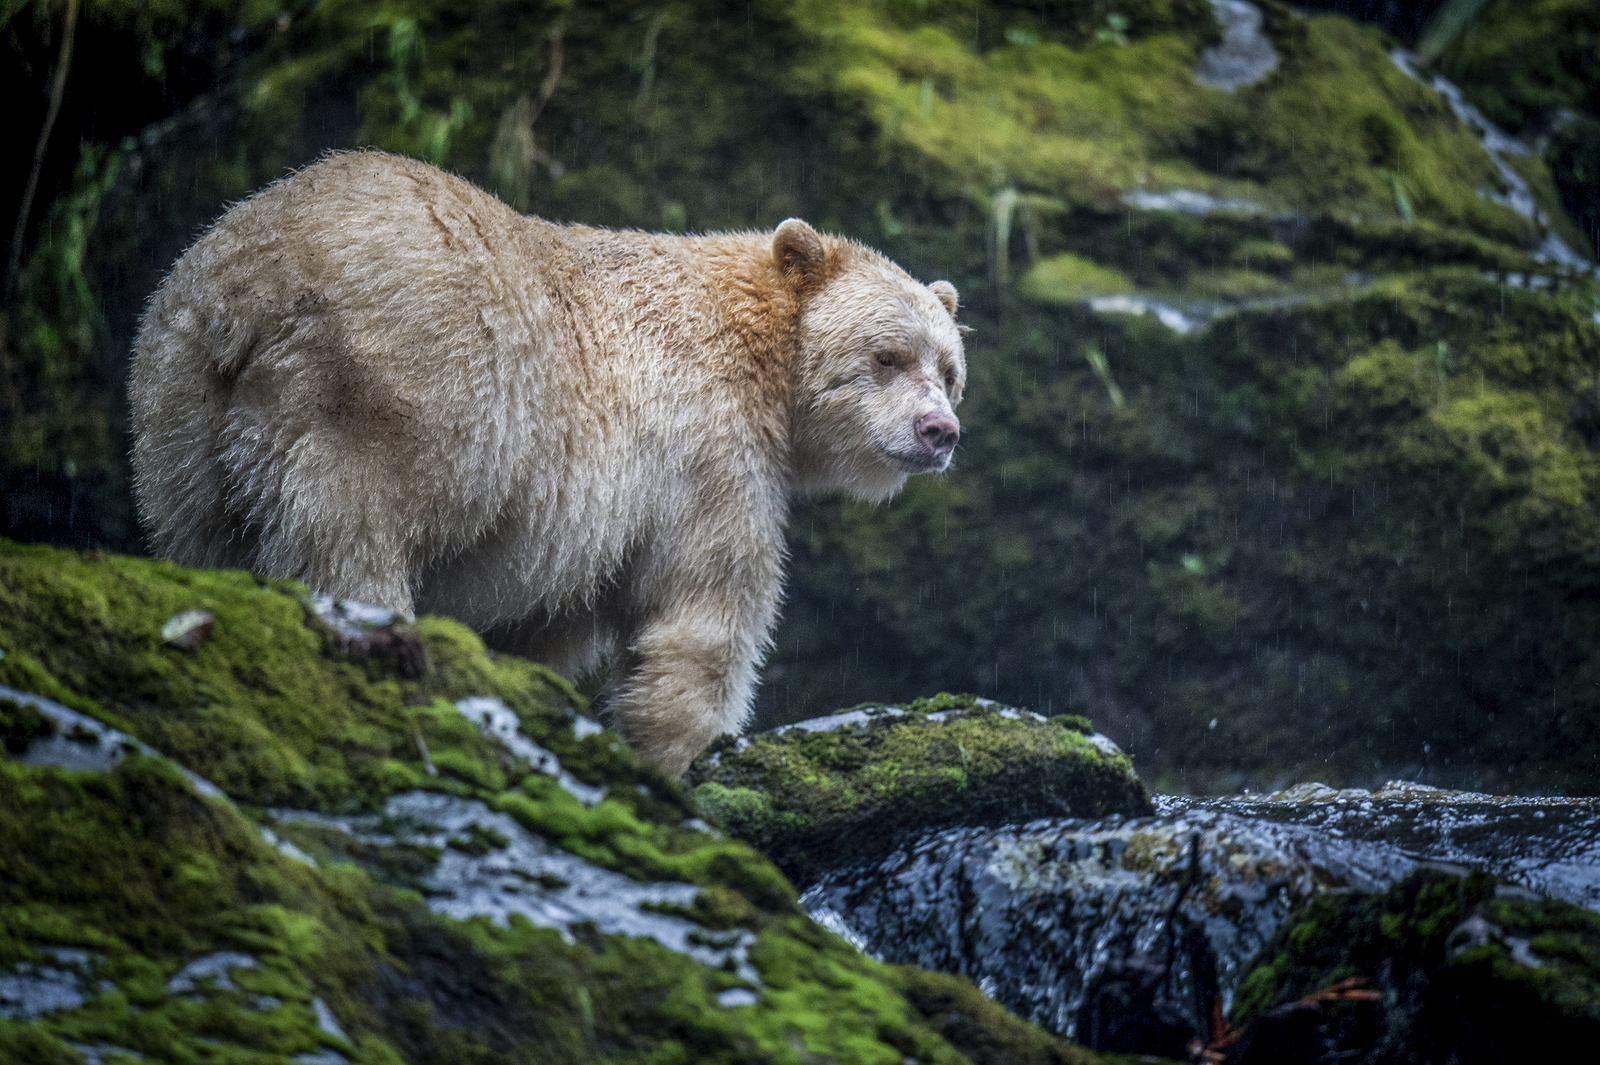 """A Kermode bear or """"spirit bear"""" (Ursus americanus kermodei) on Gribbell Island in the Great Bear Rainforest of Canada. The 21-million-acre Great Bear Rainforest is the largest coastal temperate rainforest on Earth. Photo credit: © Jon McCormack"""